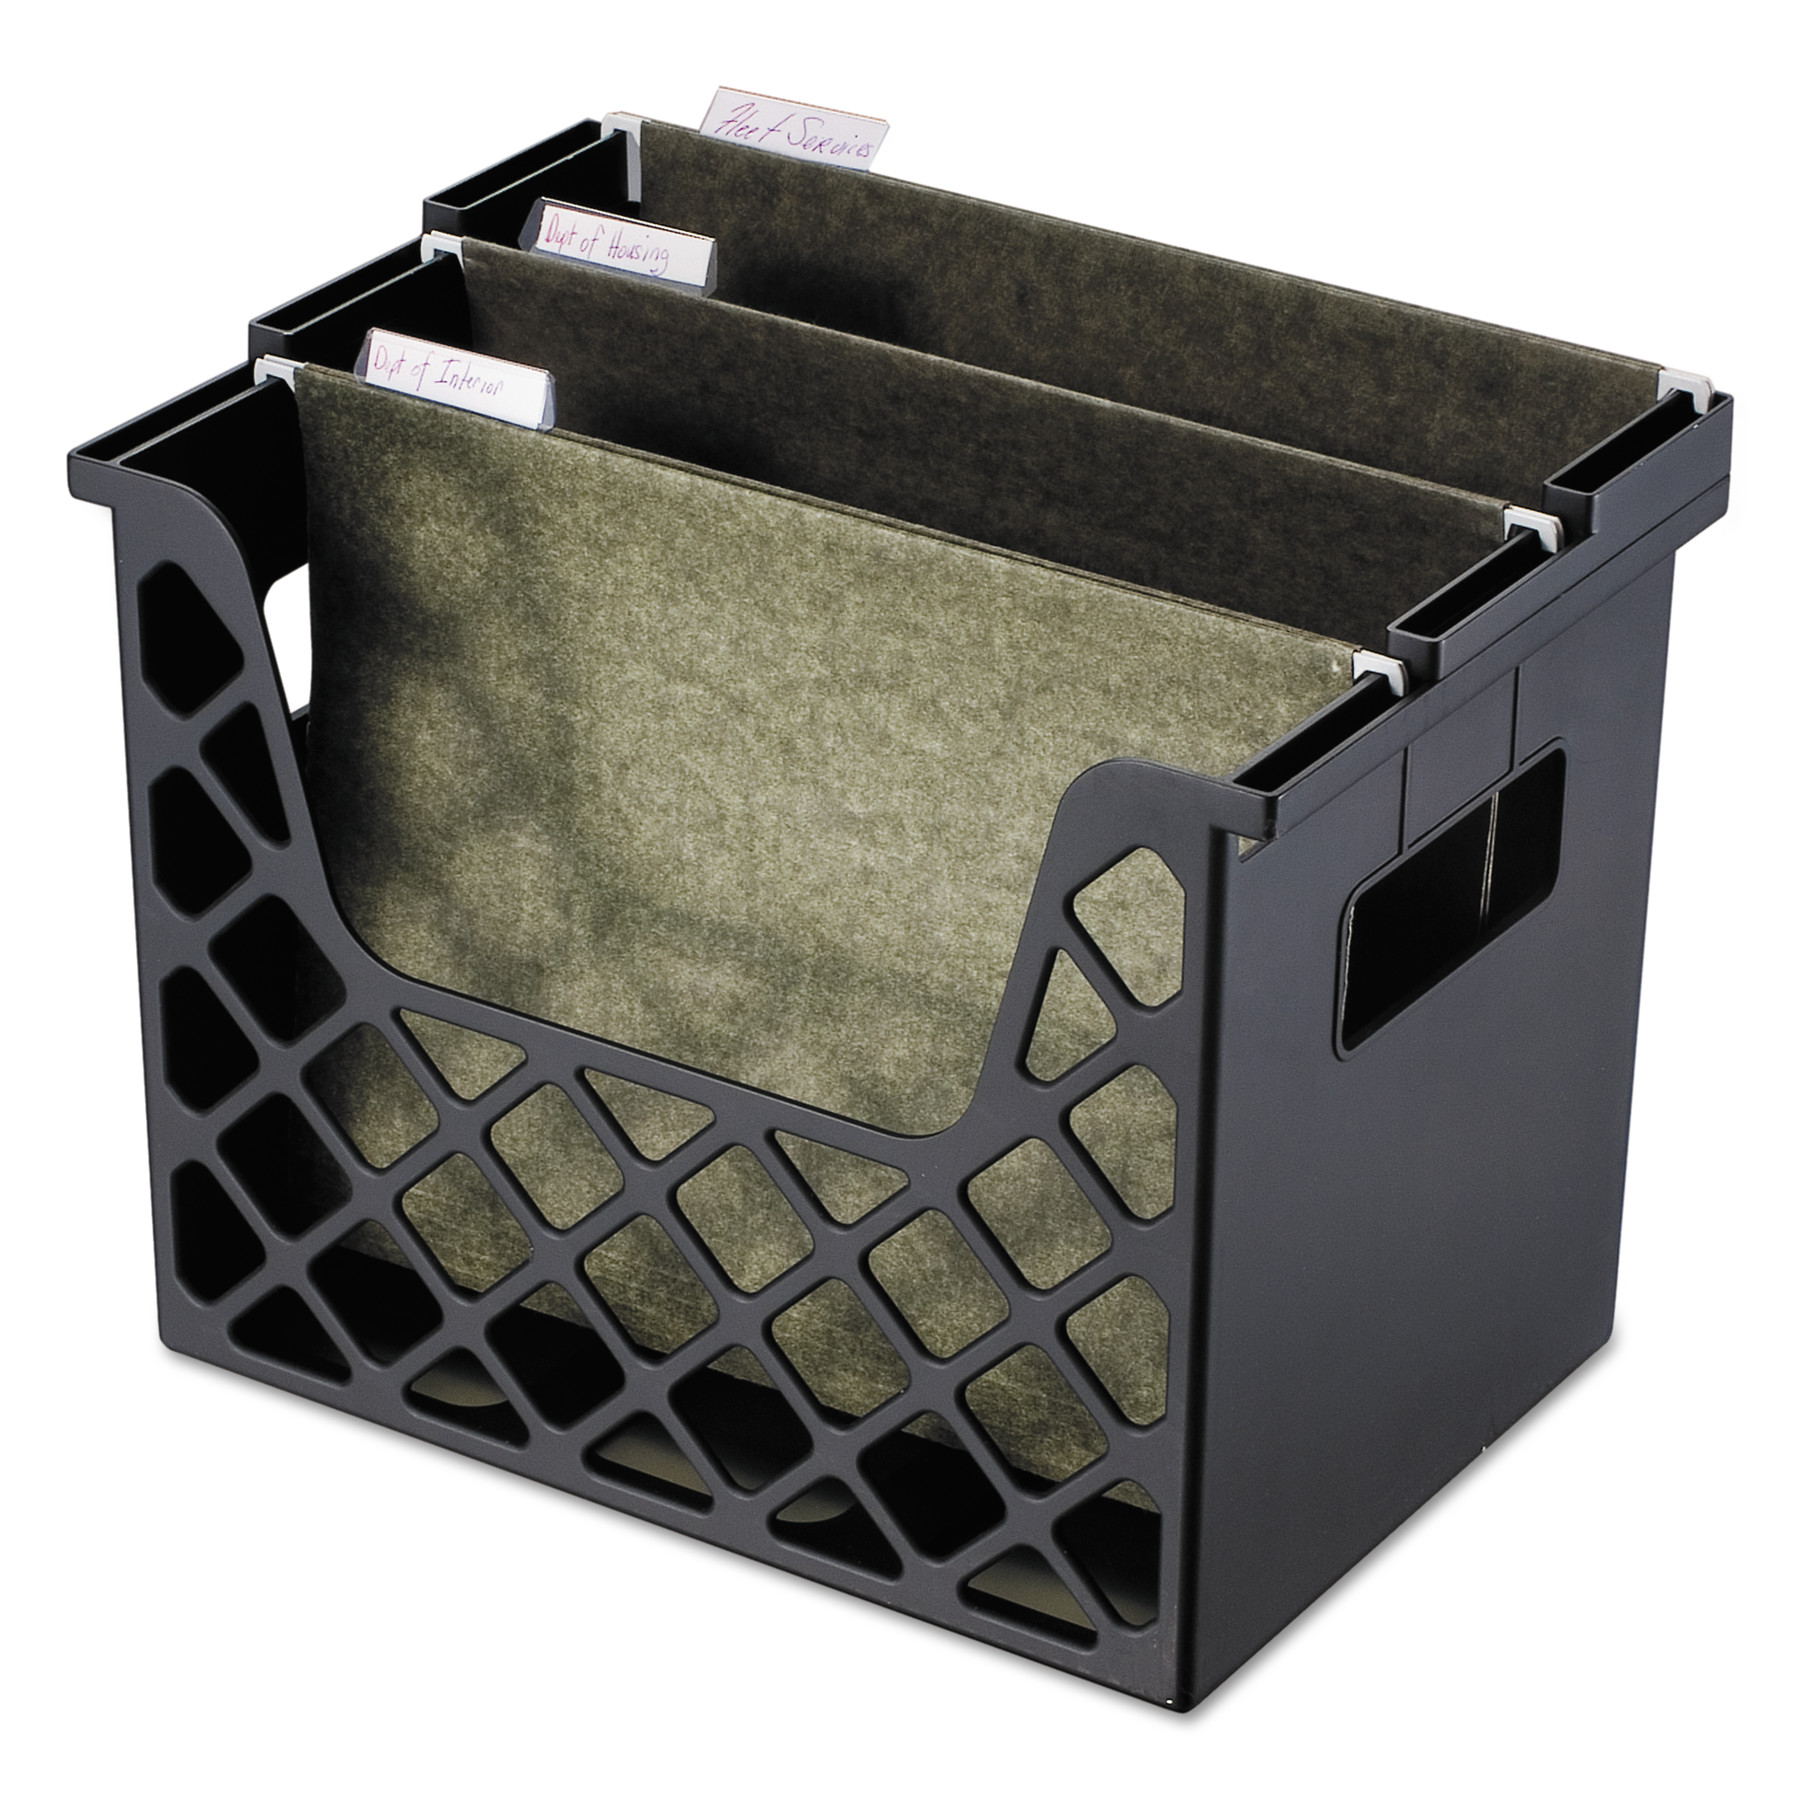 Universal Recycled Desktop File Holder, Plastic, 13 1/4 X 8 1/2 X 9 5/8, Black -UNV08123